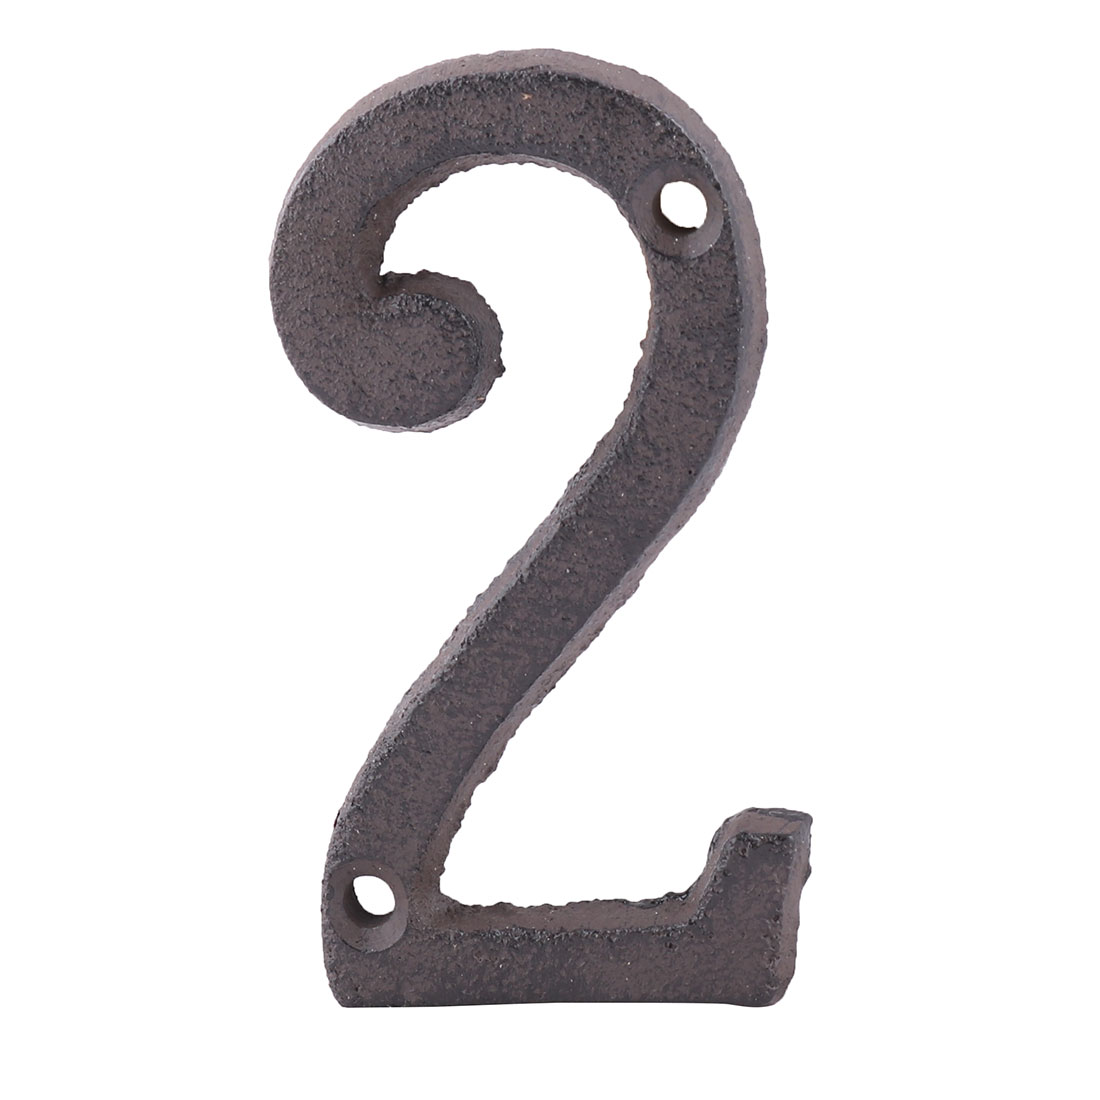 Home Street Cast Iron 2 Shaped Plate Number Door Wall Mounting Entrance Label - image 5 of 5